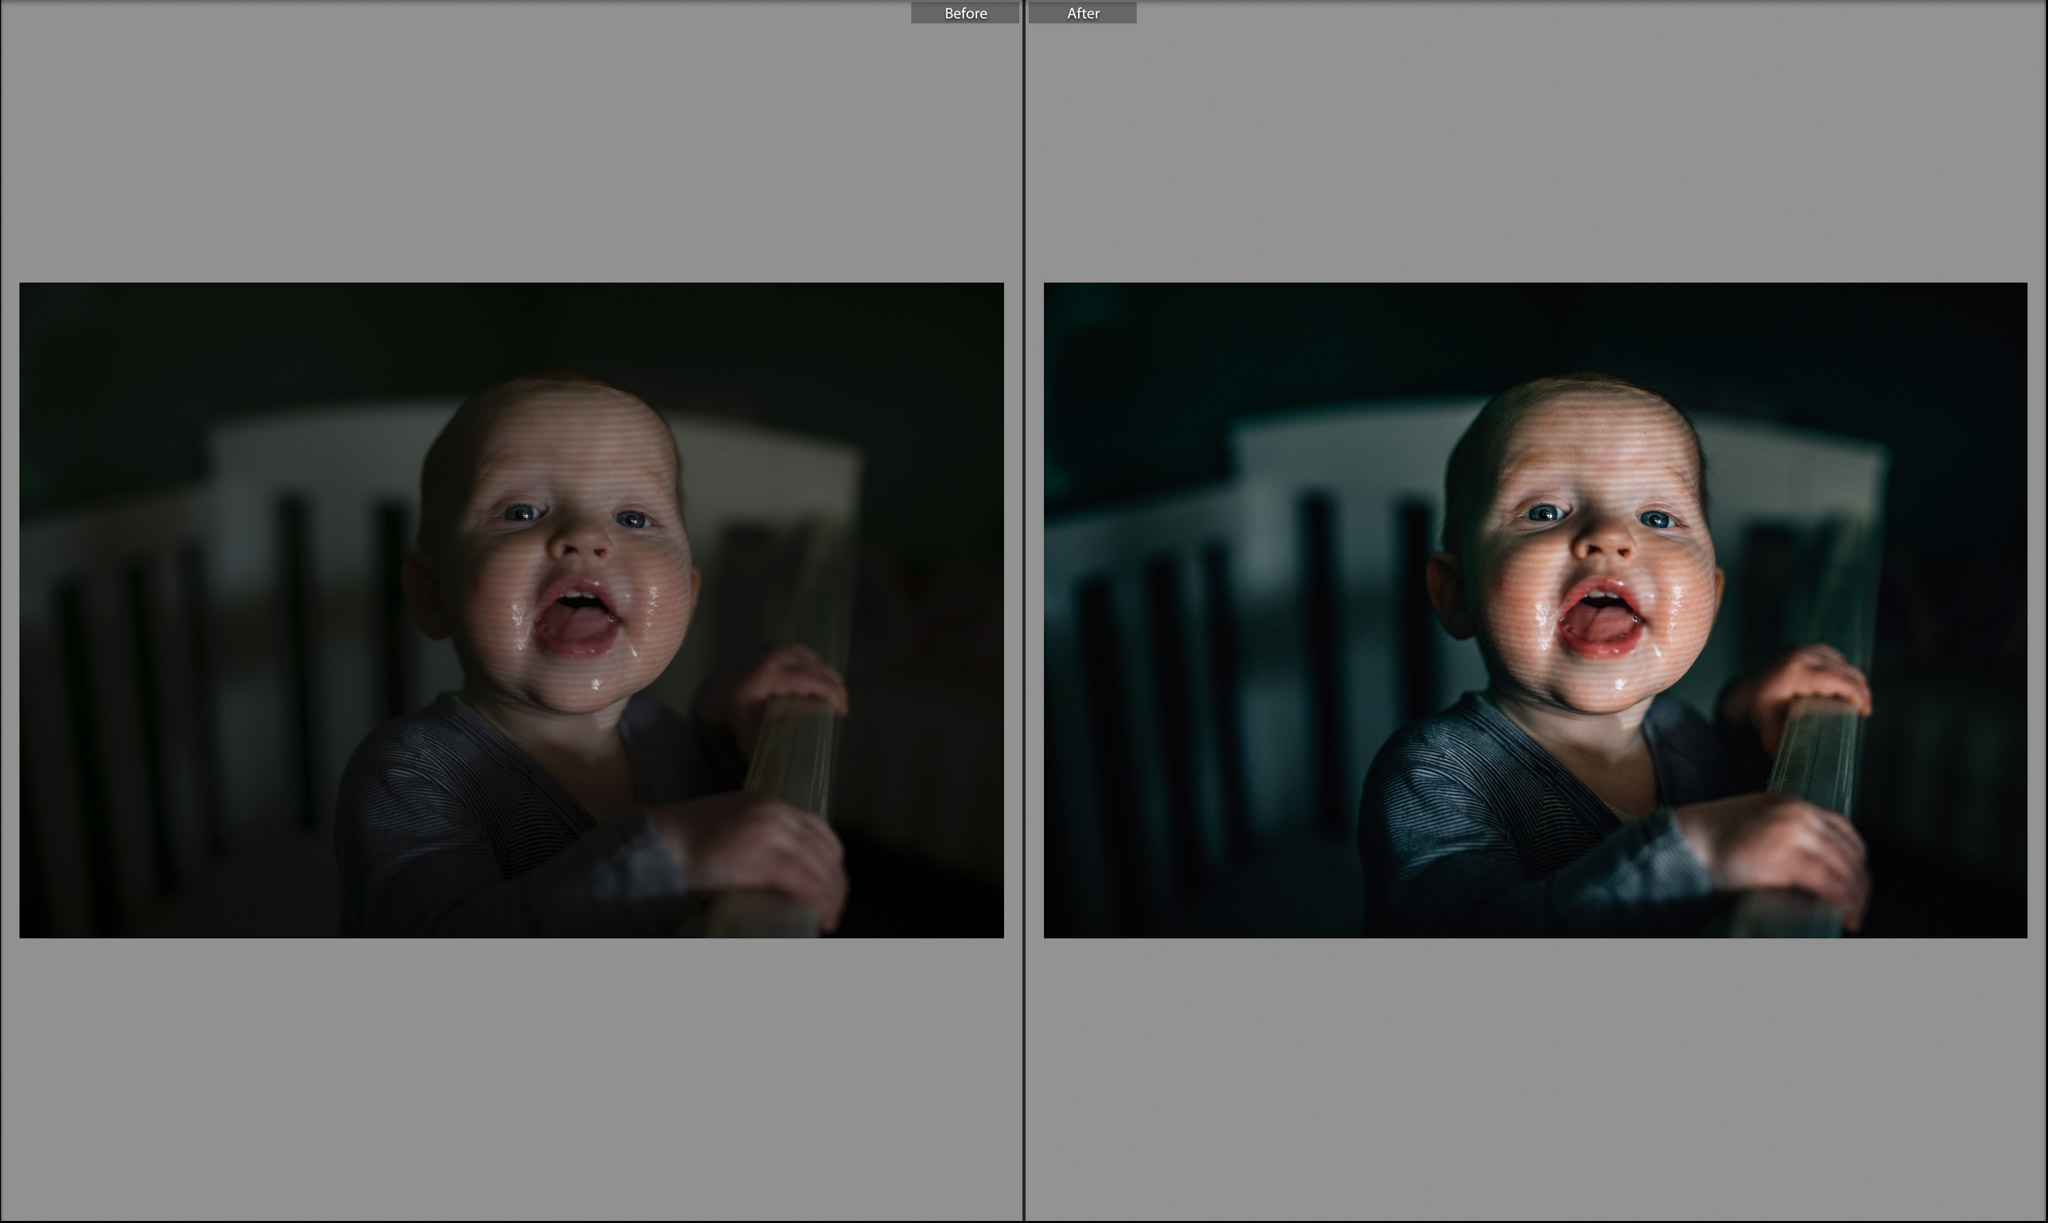 before and after baby in crib.jpg